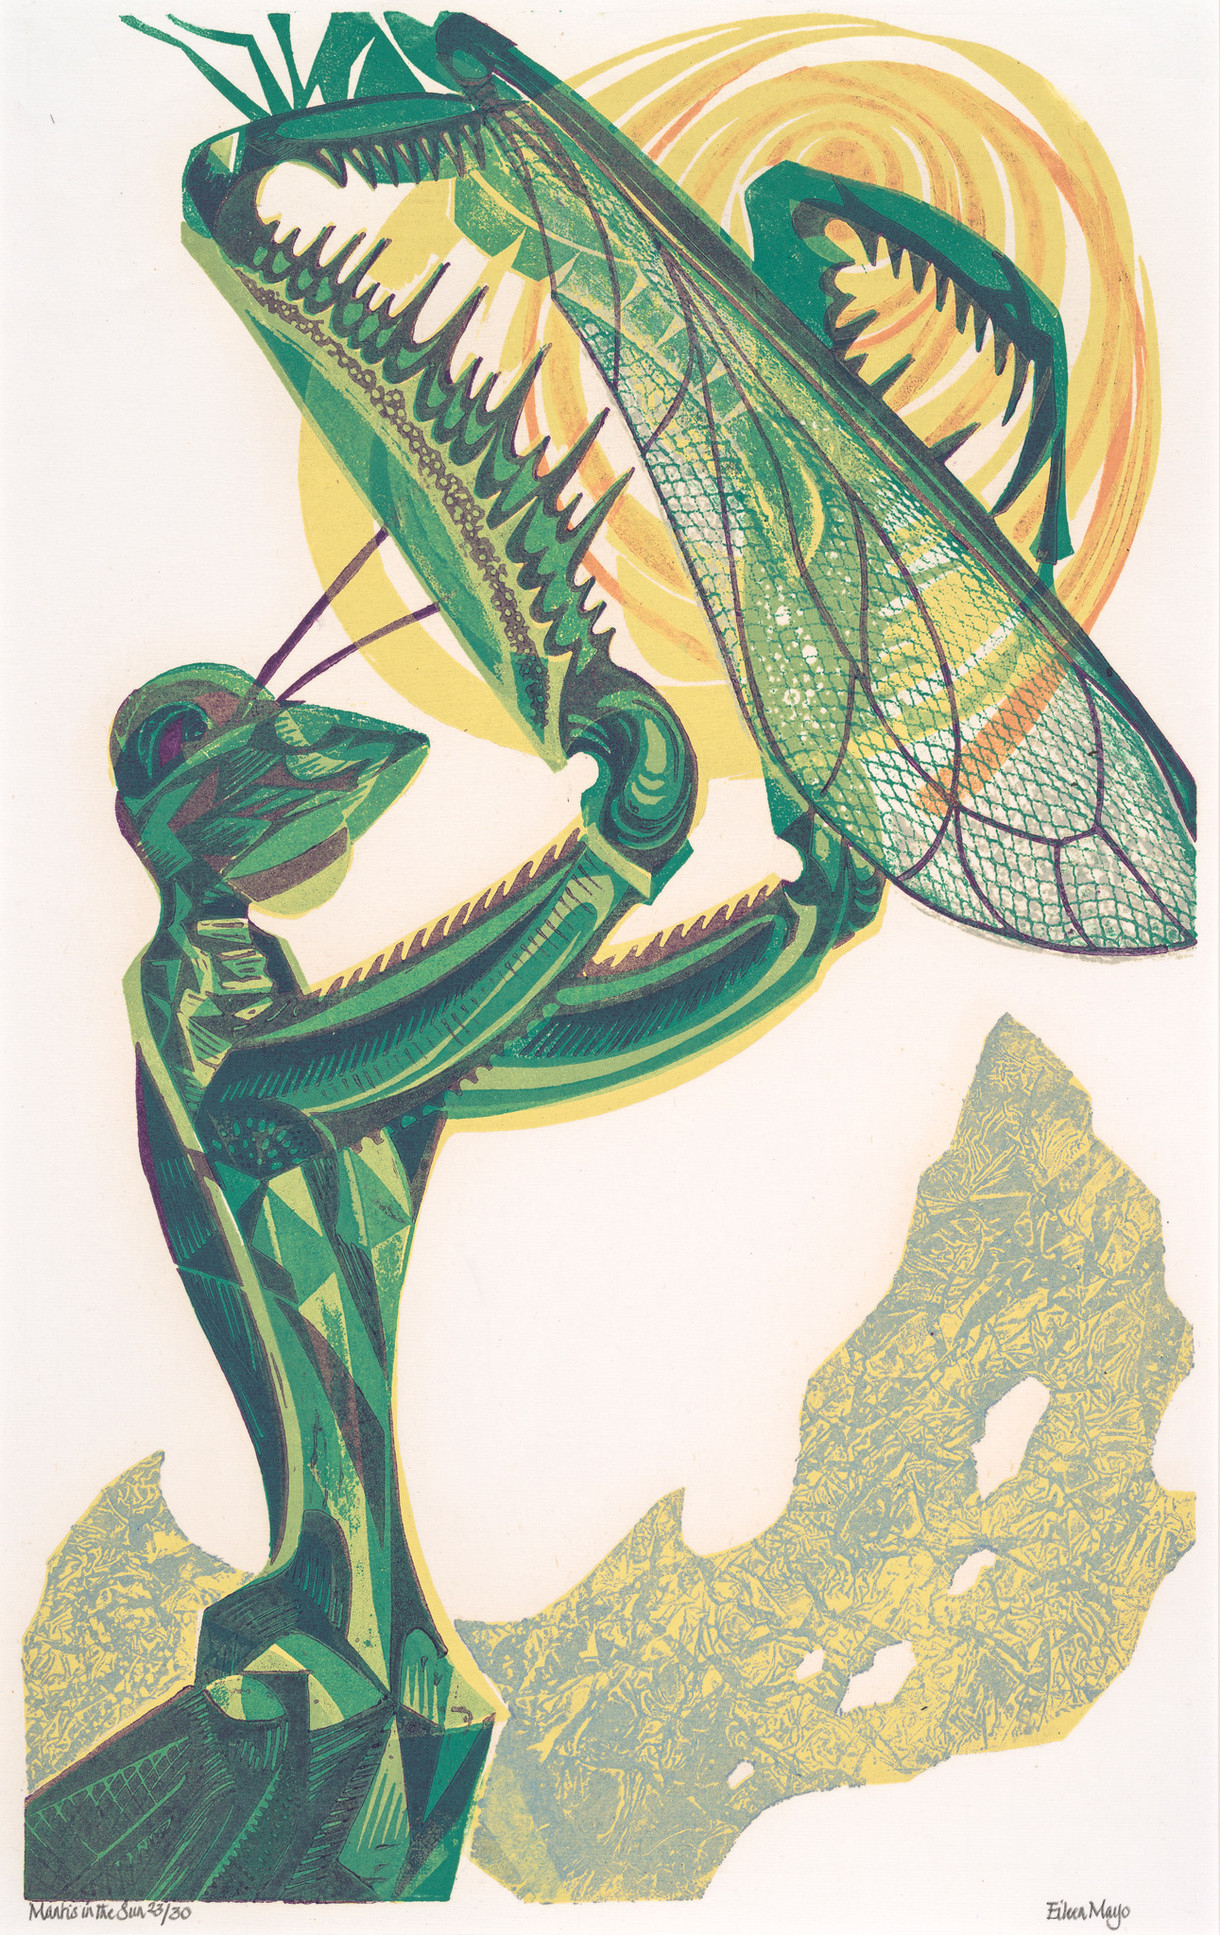 Colouring in: Mantis in the Sun